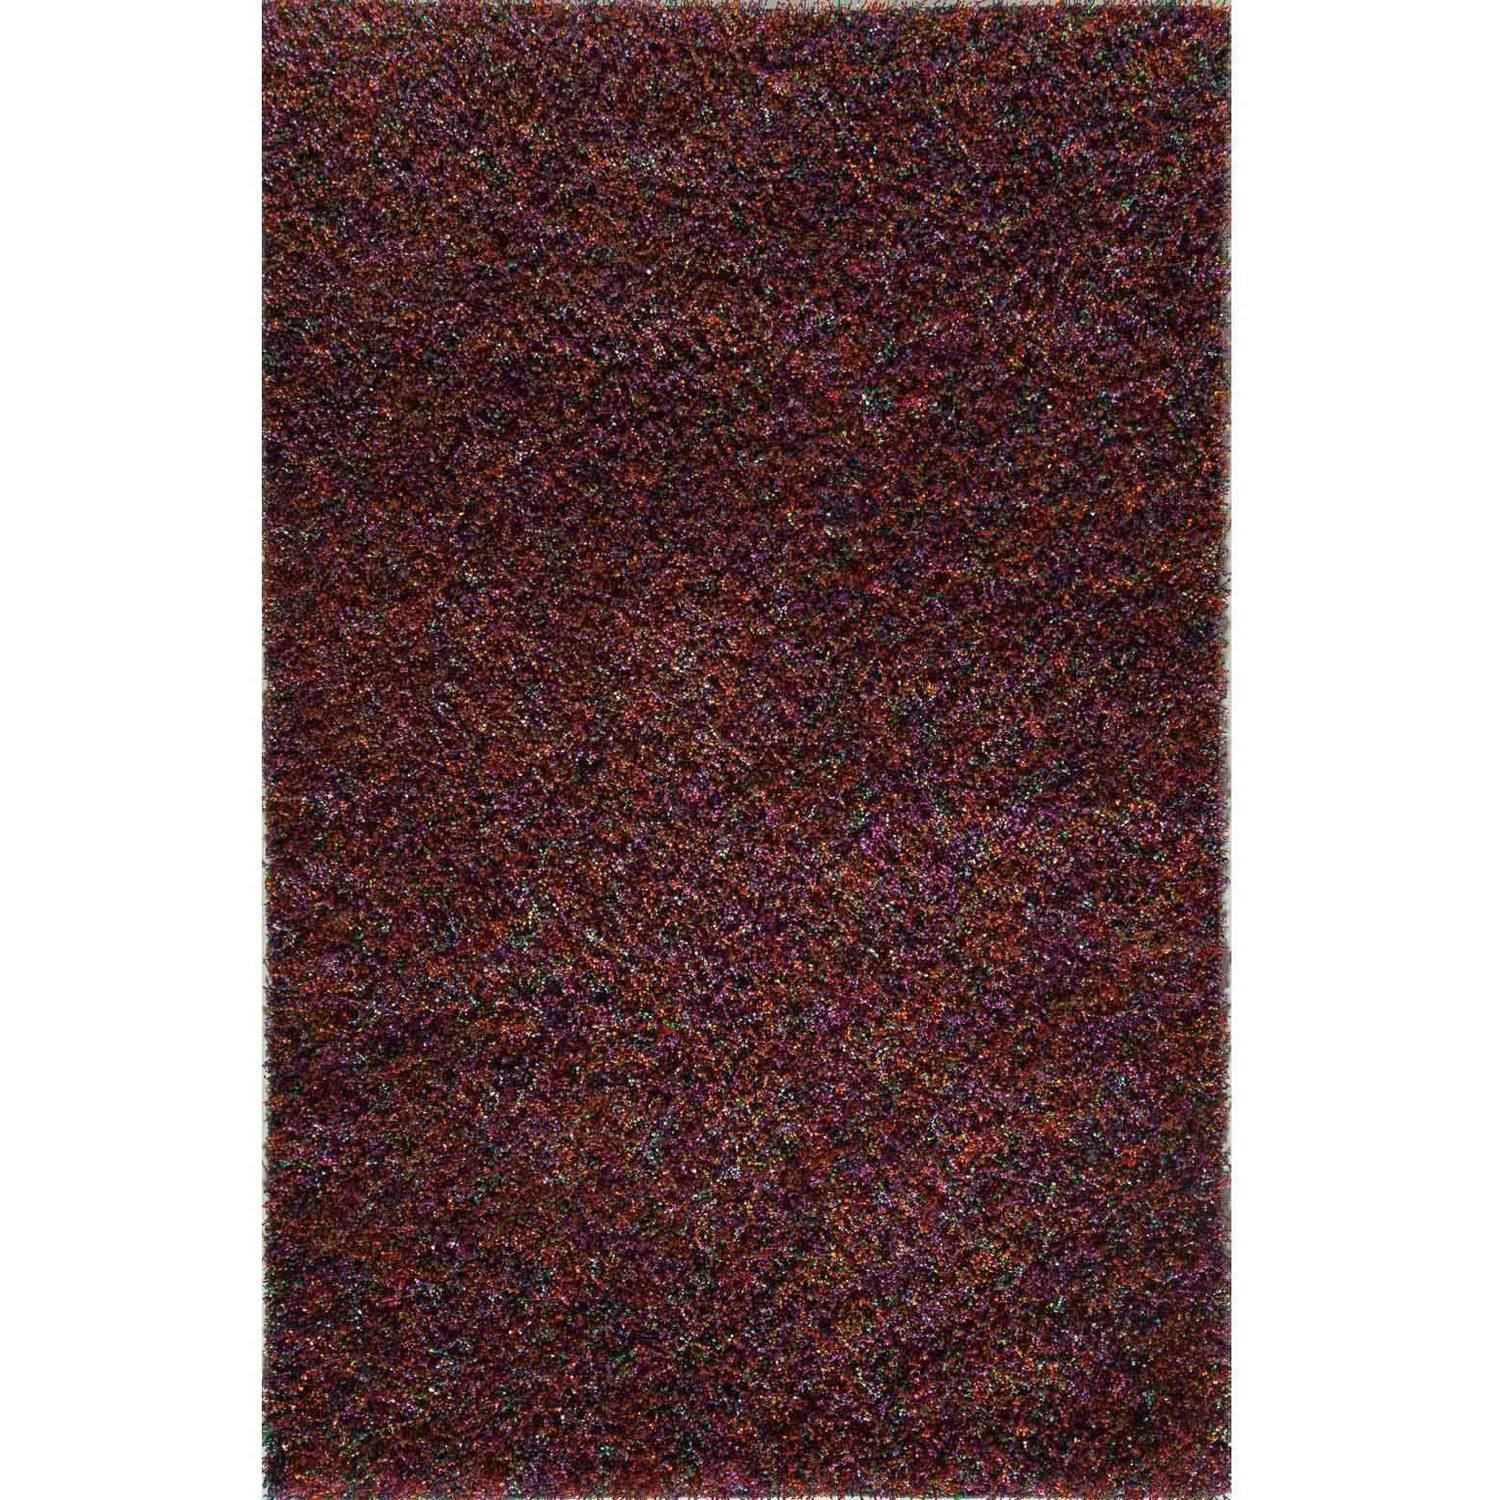 Rugs America Cambria Shag Polyester Rug, Red